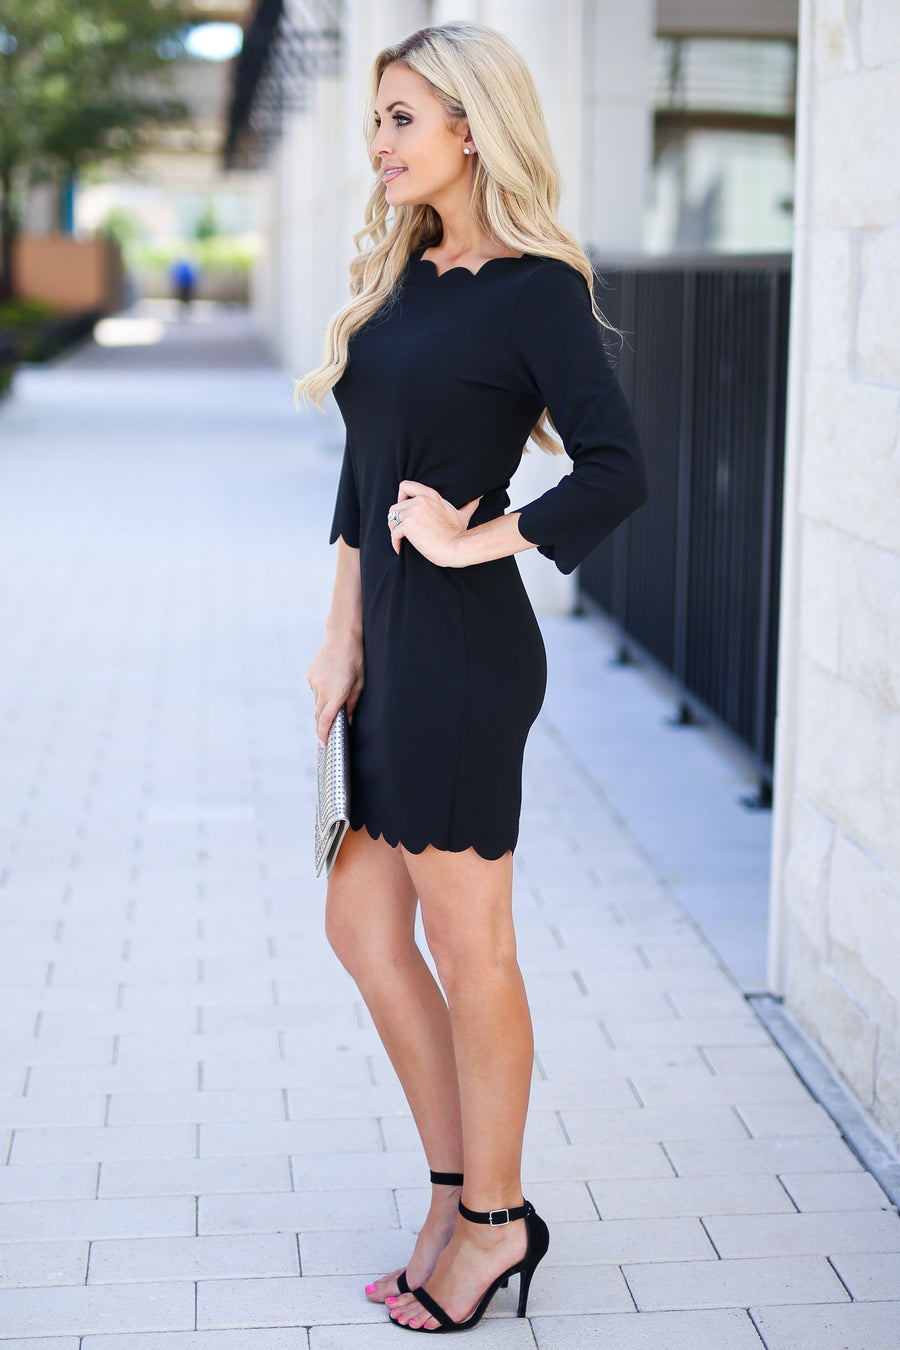 First Date Scalloped Dress - Black 3/4 sleeve petal hem scalloped dress, closet candy boutique 1